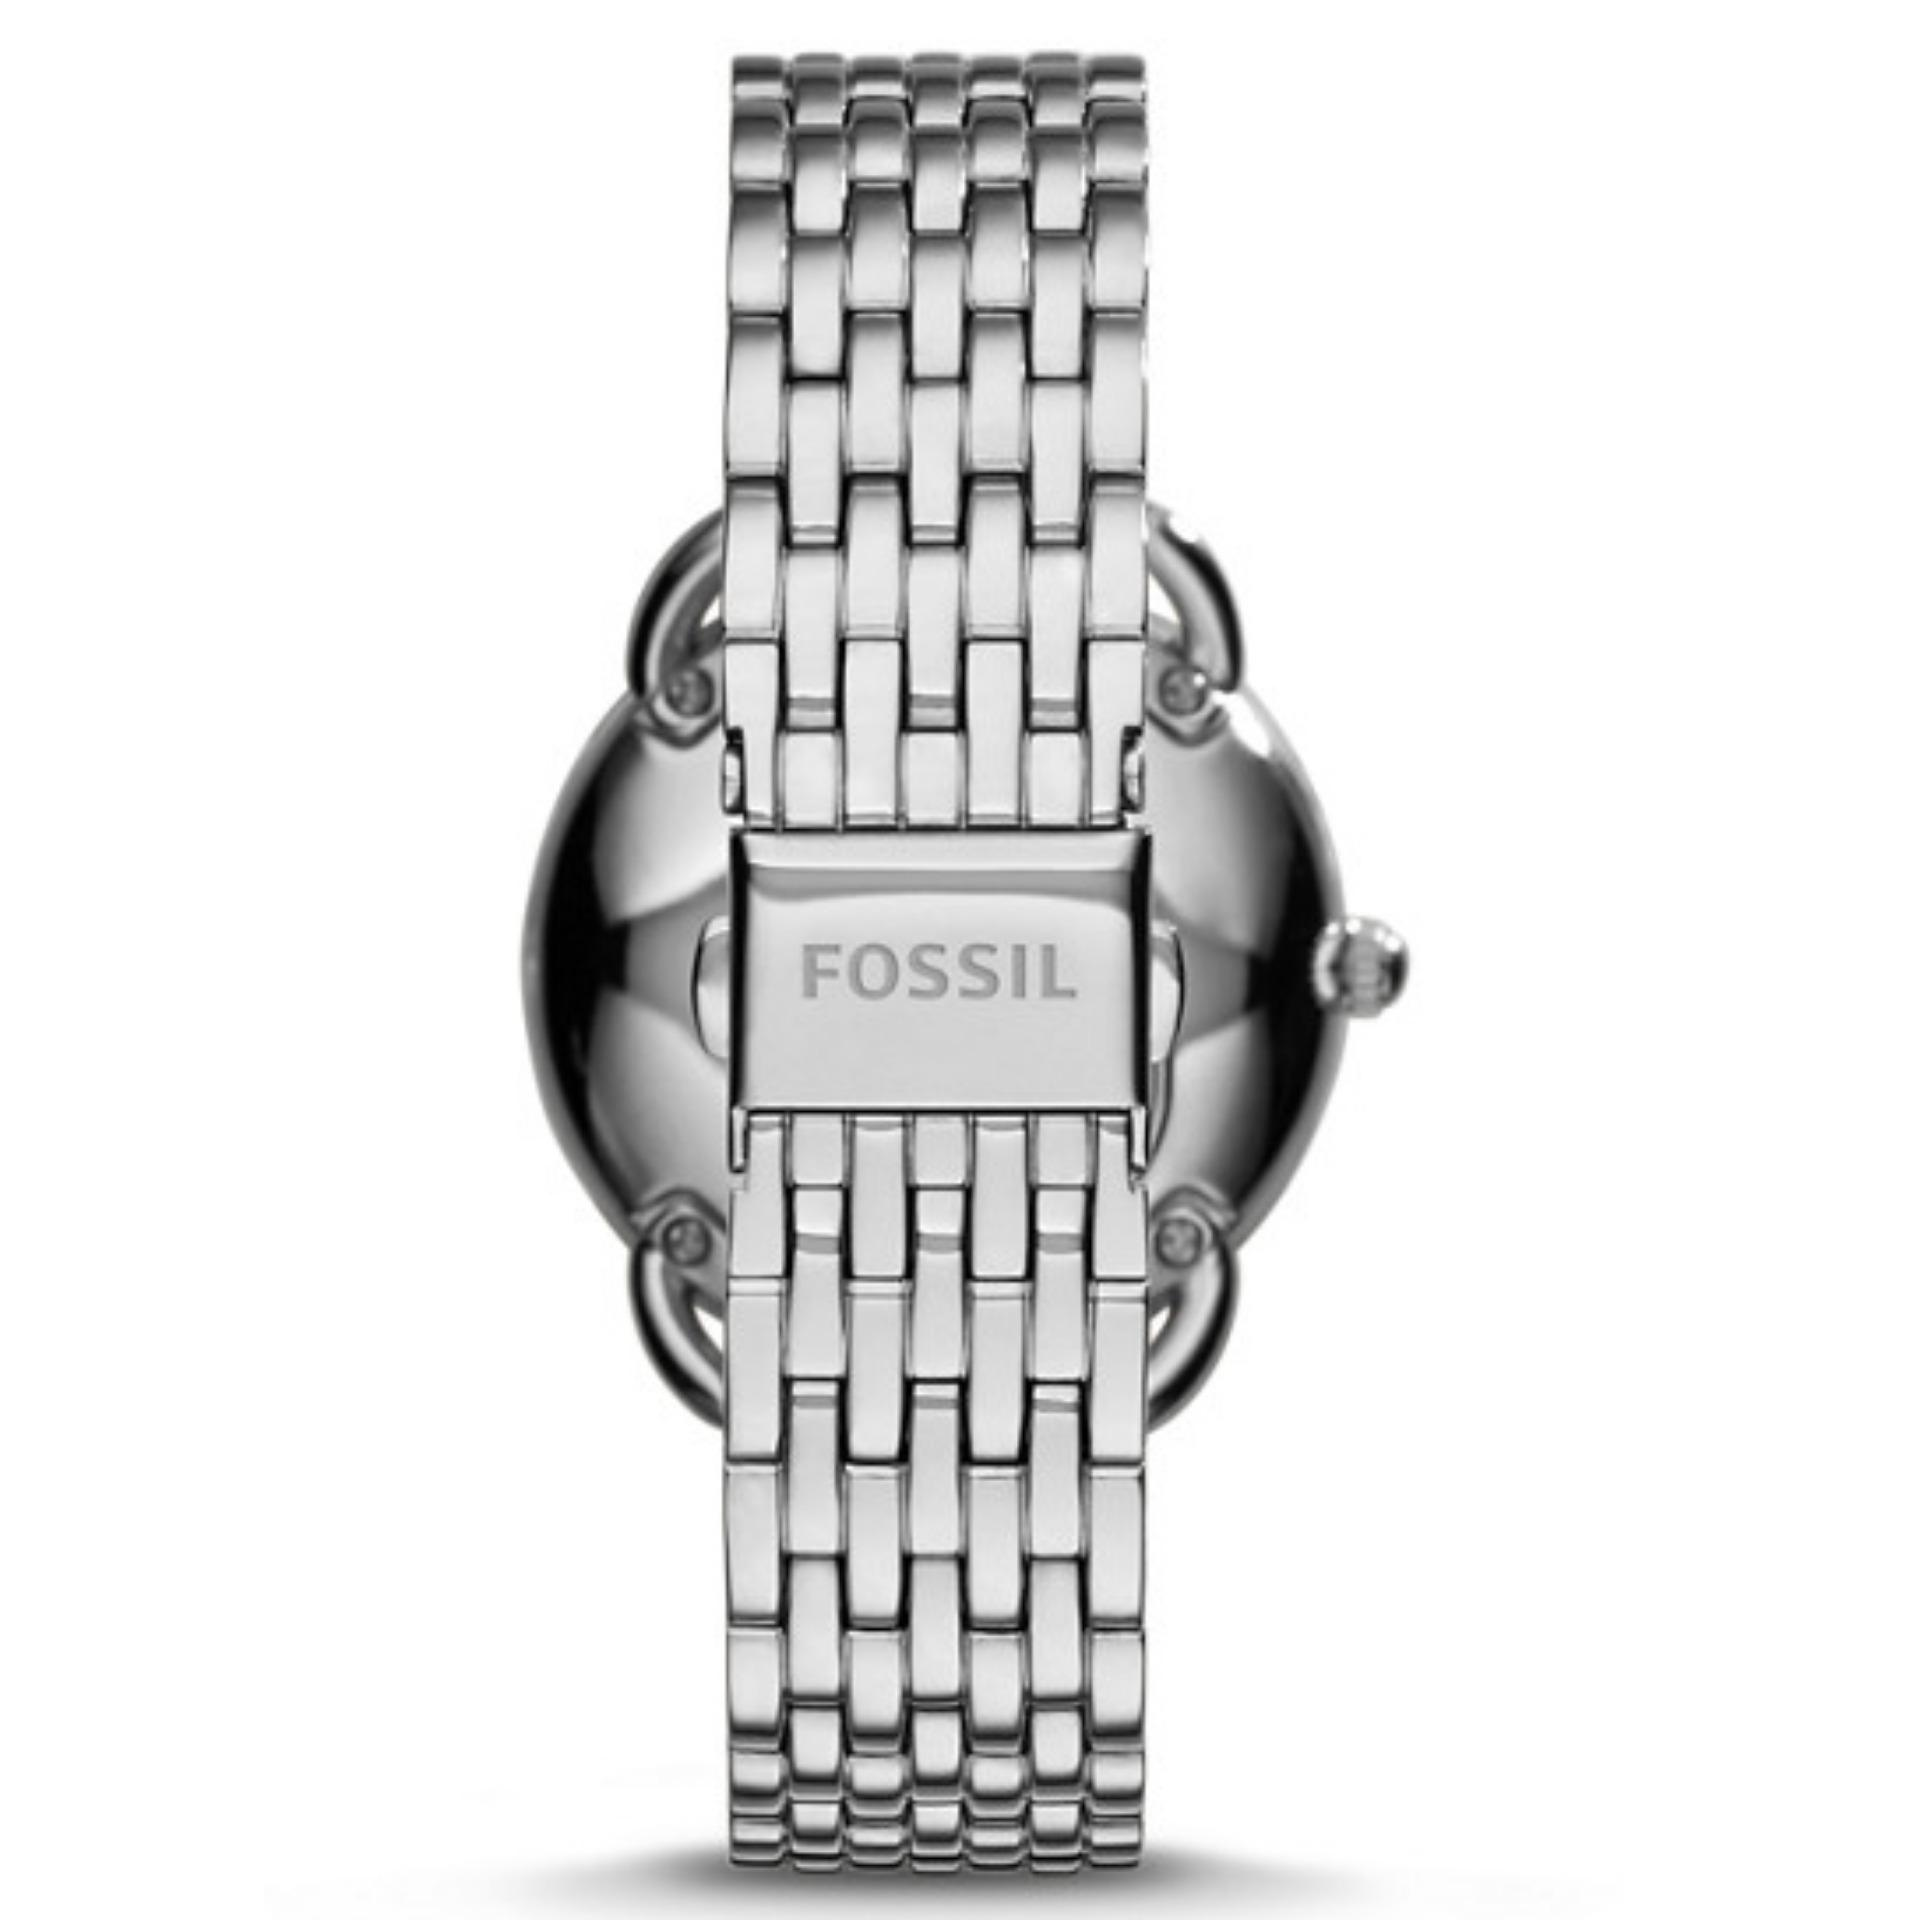 Hot Deals Fossil Jam Tangan Wanita Es3712 Tailor Original Es4099 Jacqueline Wine Leather Multifunctionstainless Steel Watch